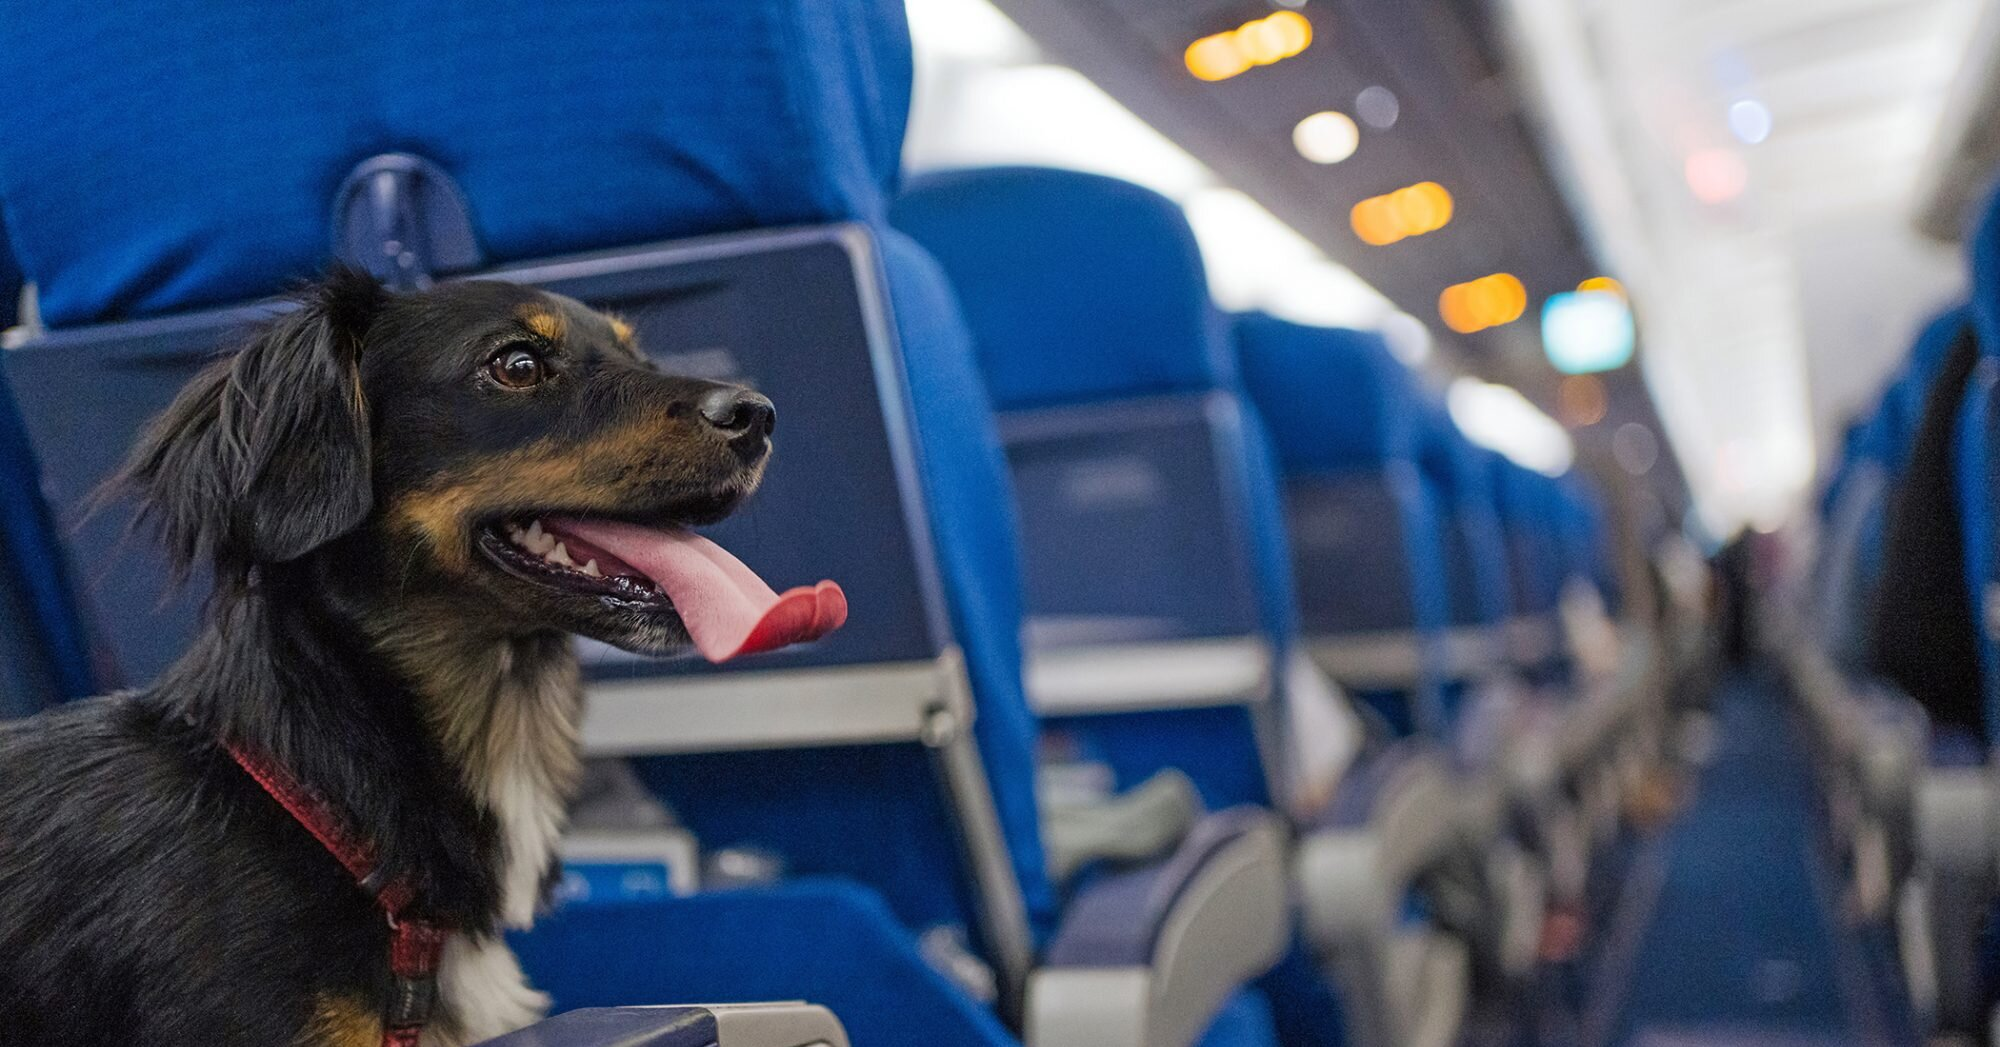 Flying With Emotional Support Animals May Soon Be a Thing of the Past